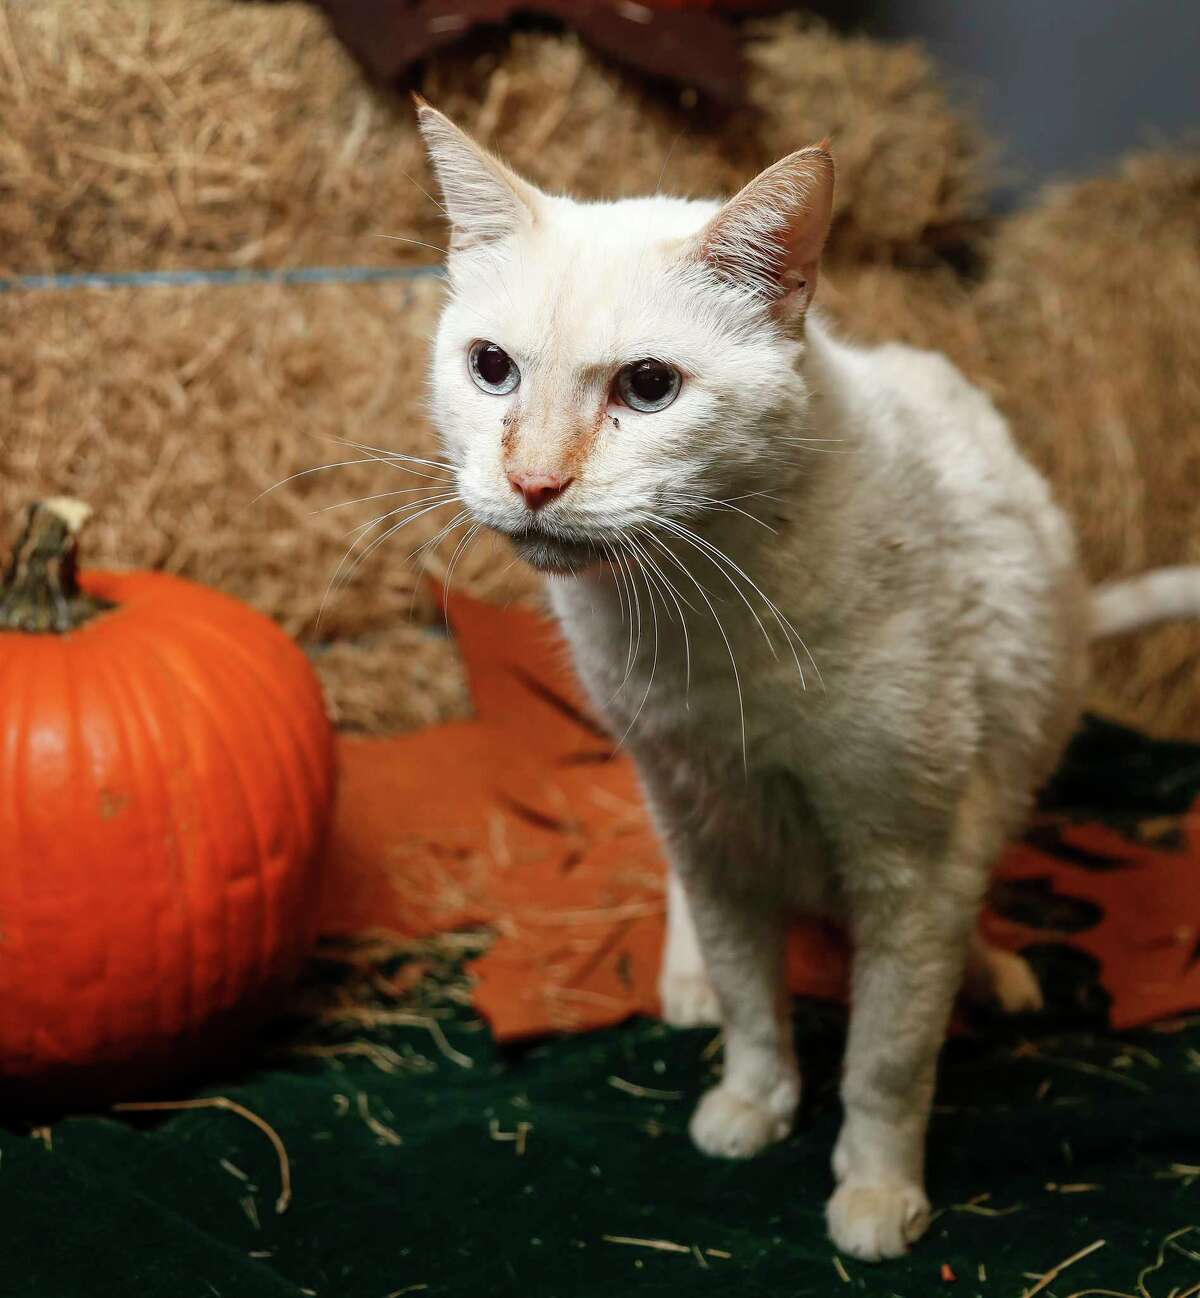 Valentin (ID: A1662321) is a 14-year-old, male, Flame Point Siamese cat available for adoption from BARC Animal Shelter. Photographed, Tuesday, Nov. 19, 2019, in Houston. Valentin was surrendered to the shelter with a senior dog by their own because they had gotten